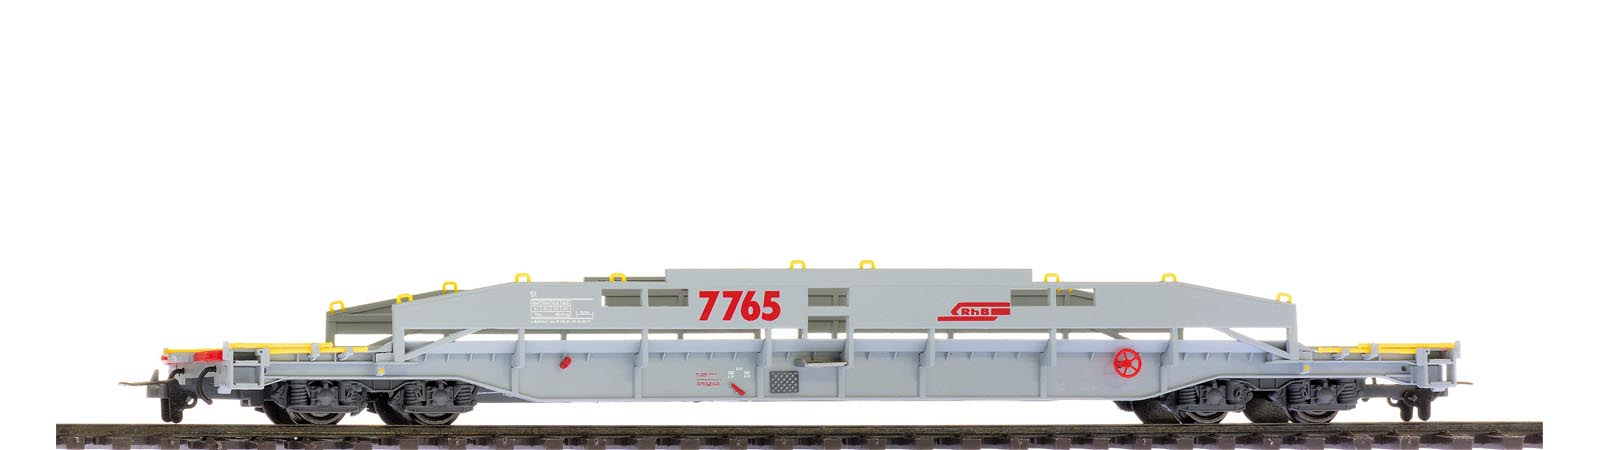 Bemo 2290 105 RhB Sl 7765 ACTS carrier unloaded